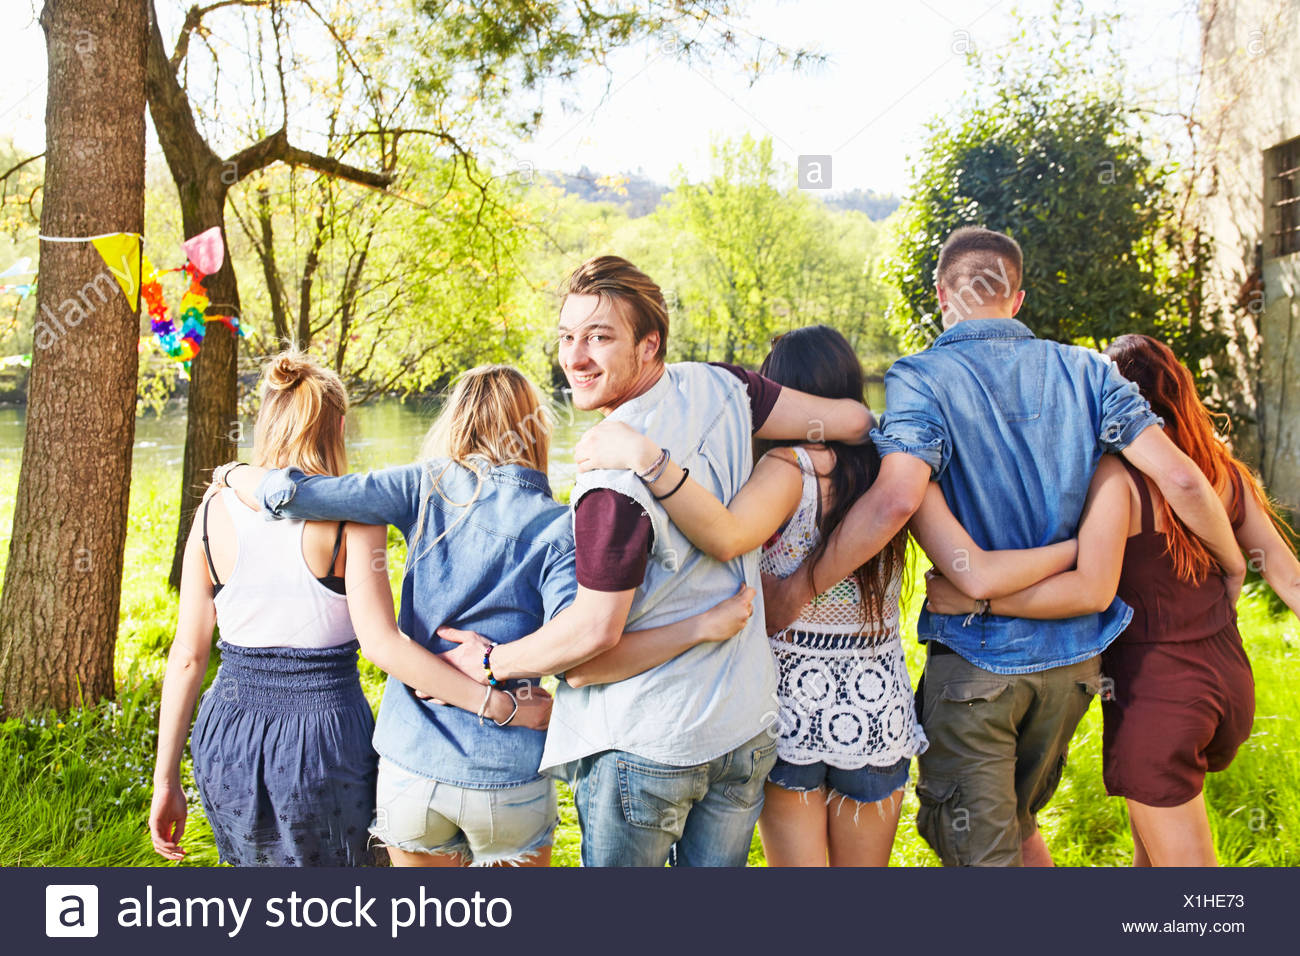 Group of friends with arms around each other - Stock Image